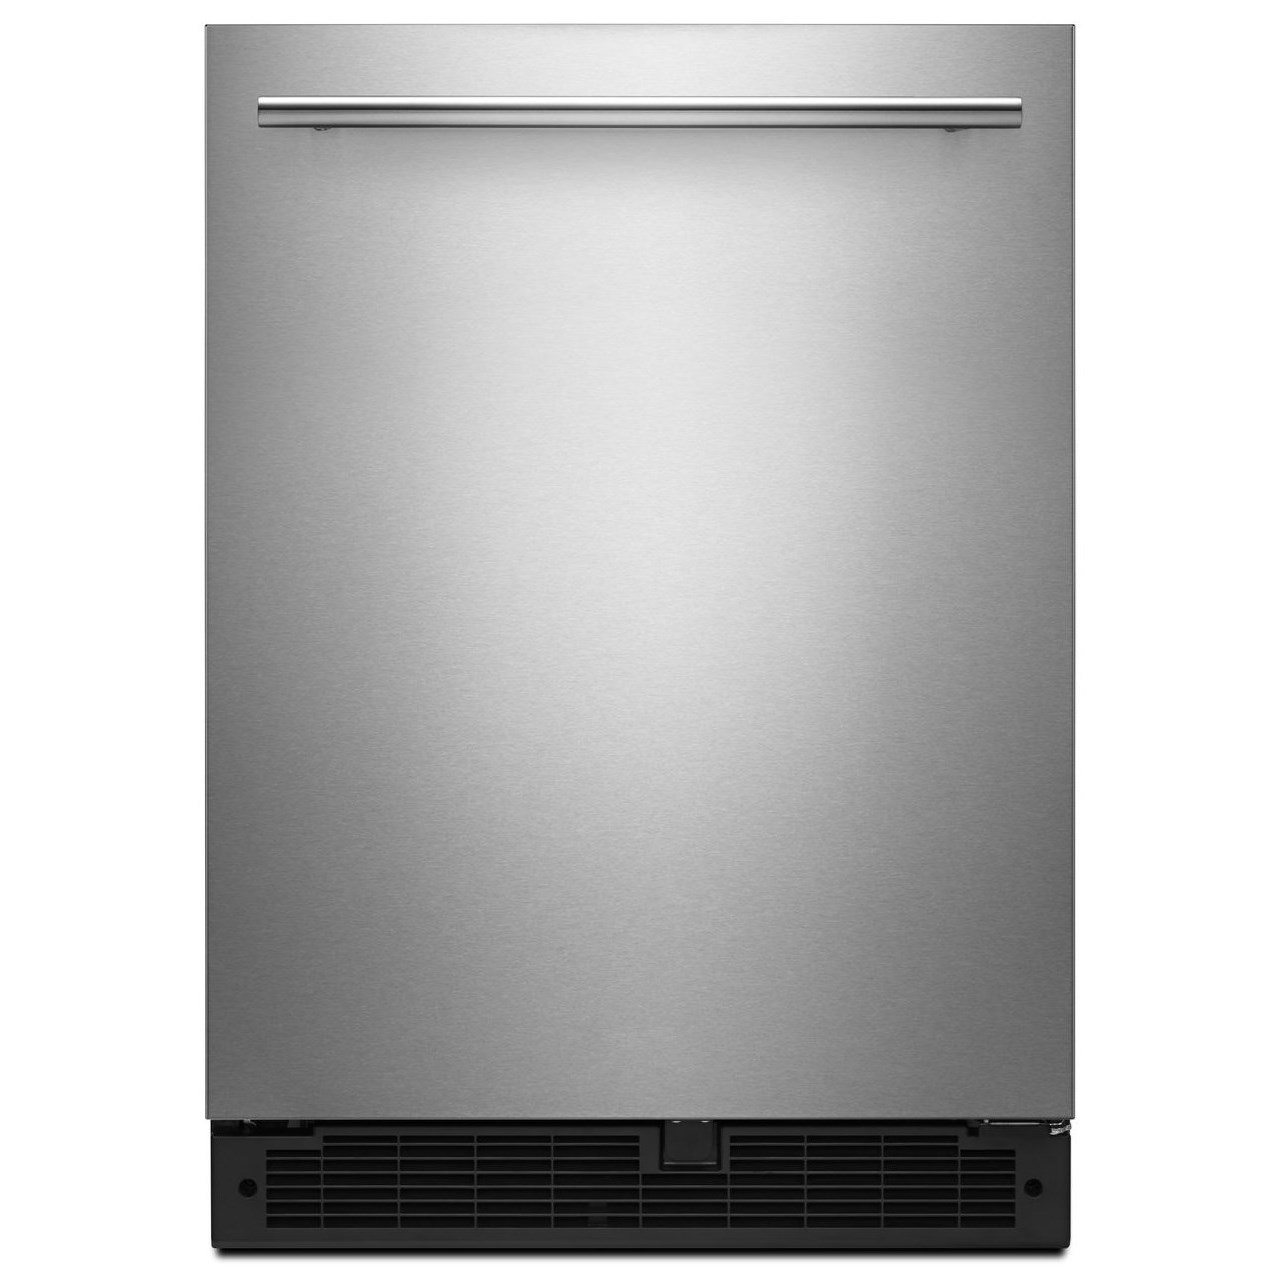 All Refrigerators 24-inch Wide Undercounter Refrigerator by Whirlpool at Furniture and ApplianceMart